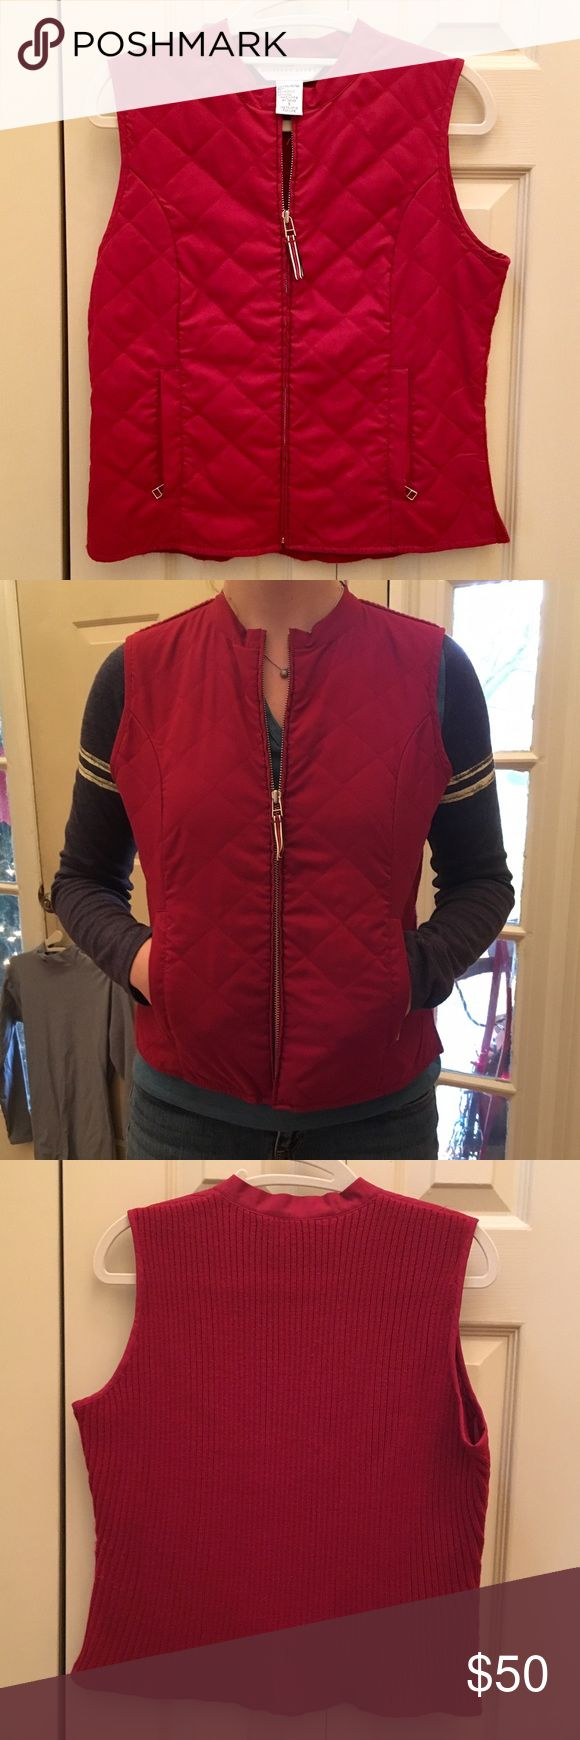 NWOT Red Geoffrey Beene Sport Vest In perfect condition. No signs of wear at all. The back is like a sweater and the front is the standard vest look. Great piece for cooler weather/layering. The red is awesome for an accent piece. Geoffrey Beene Jackets & Coats Vests